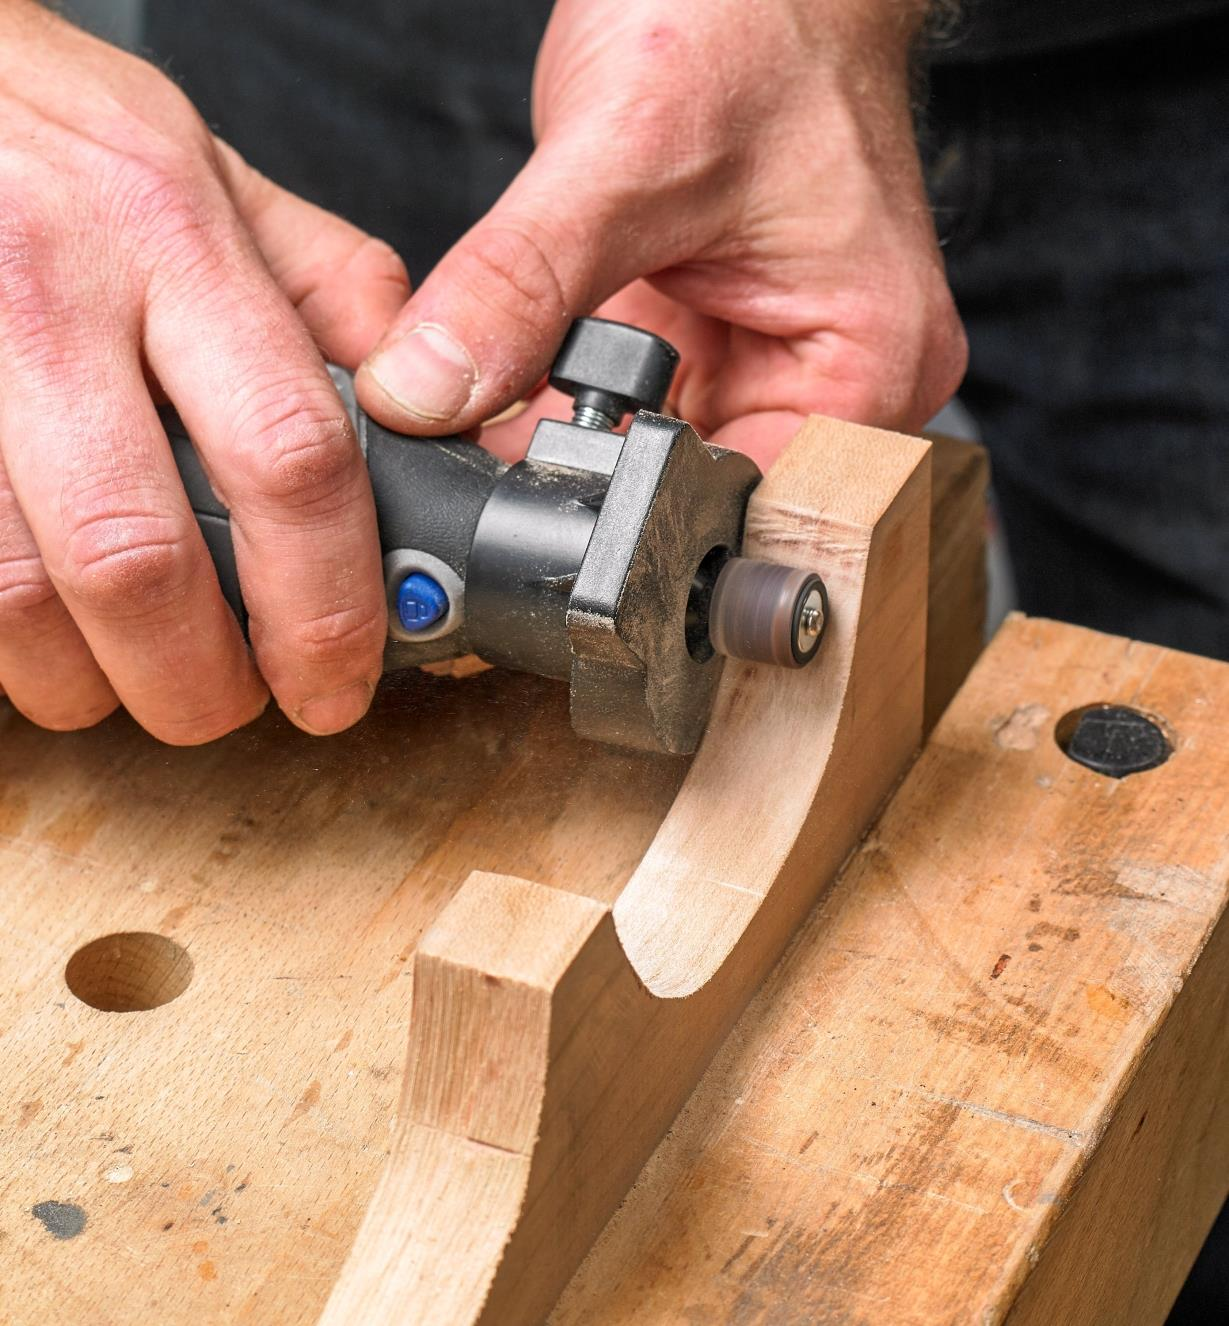 Sanding a contoured workpiece using the Dremel 3000 rotary tool with the shaping platform attachment